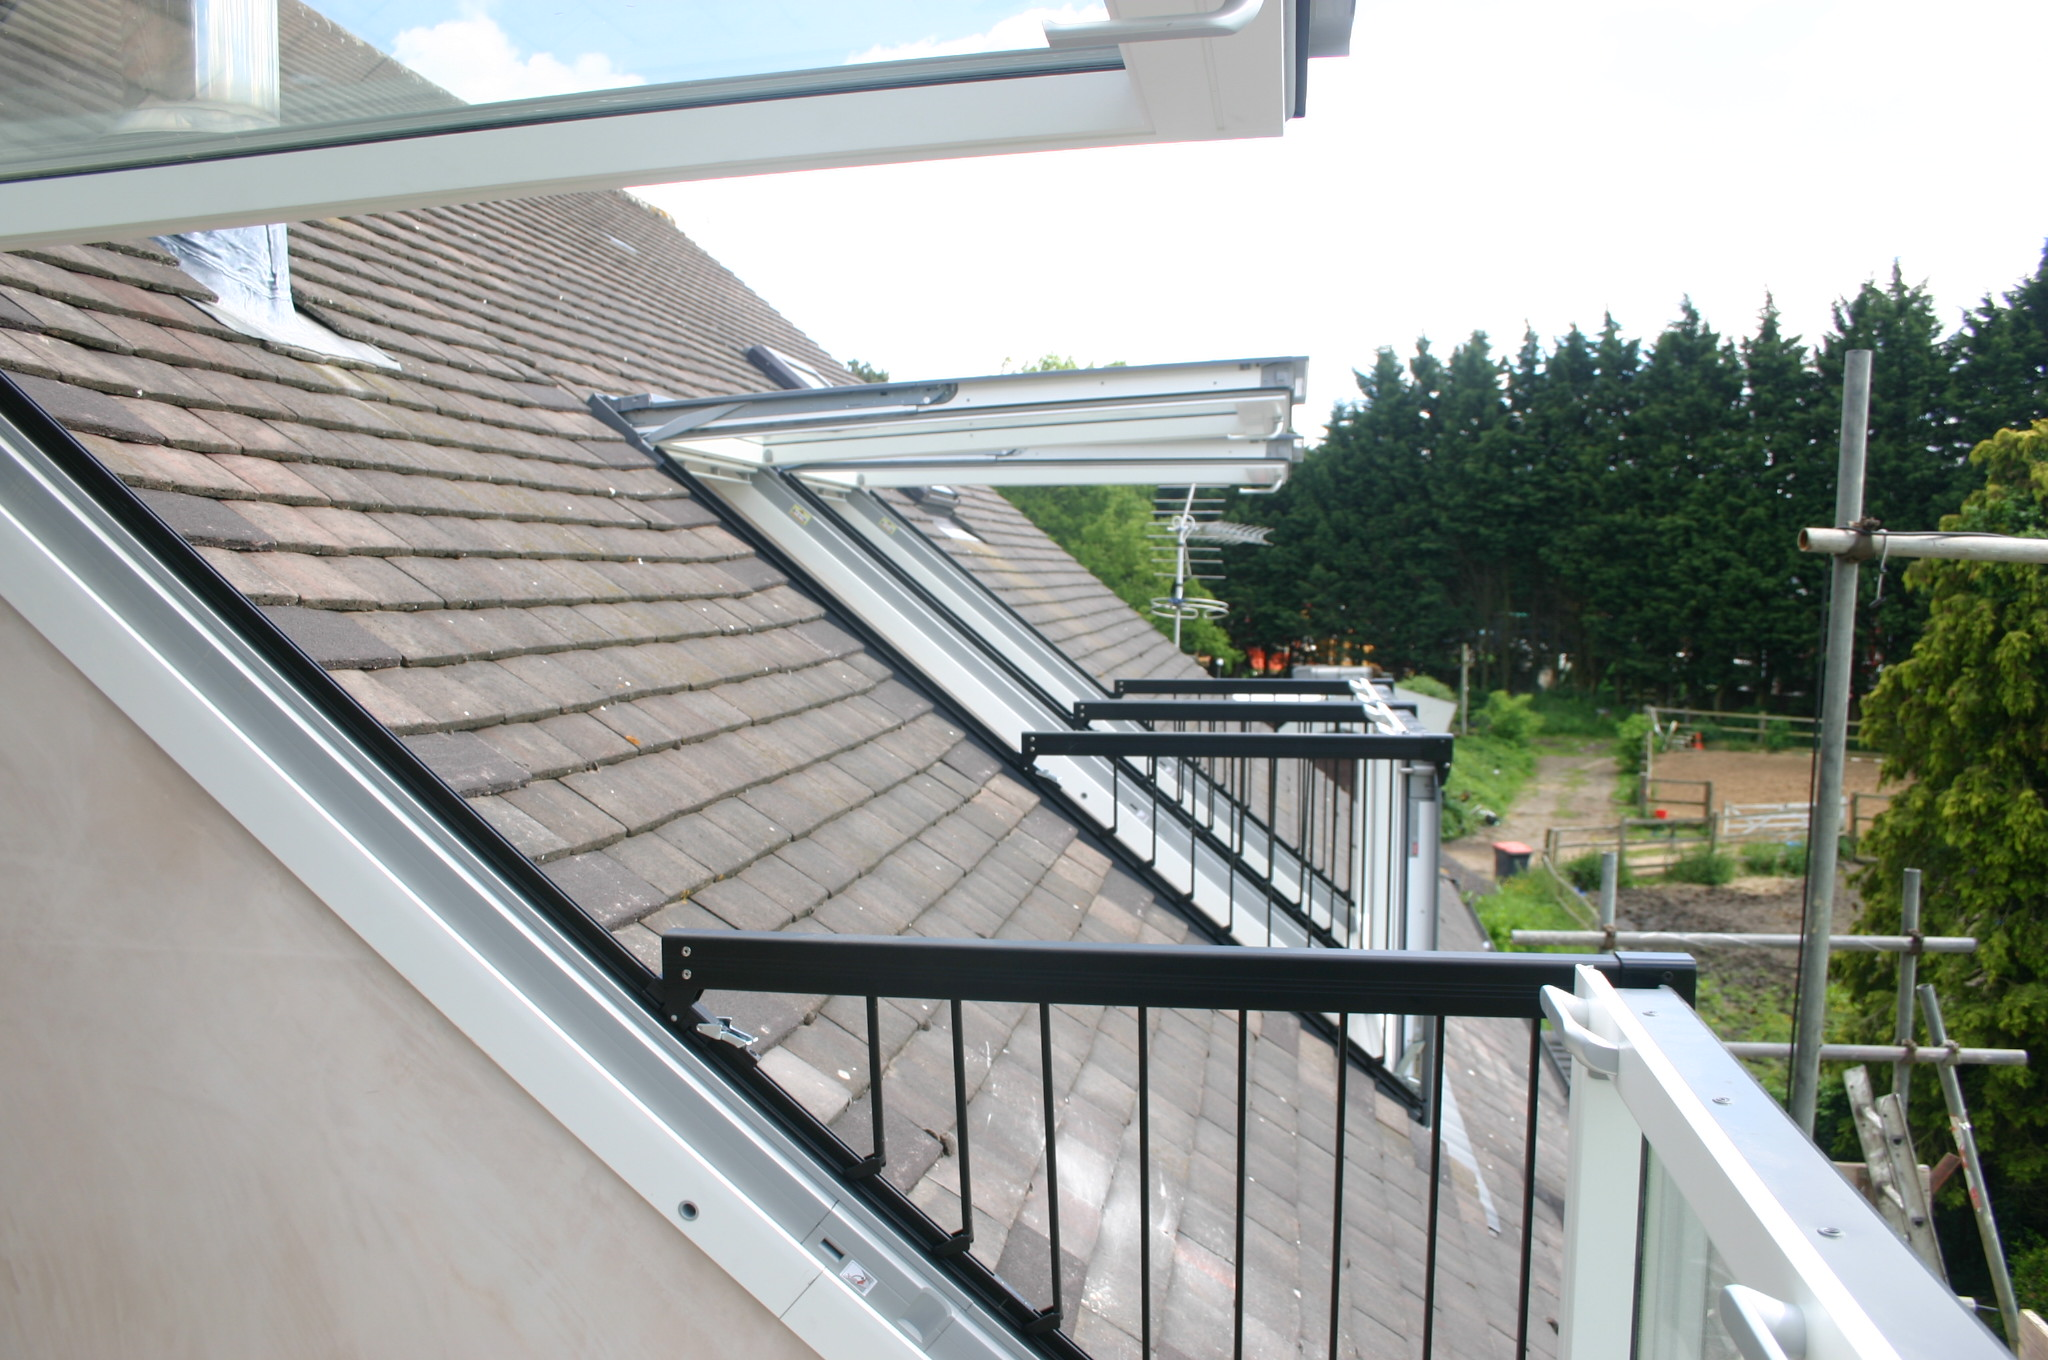 Velux roof windows installers fitters suppliers for How to clean velux skylights